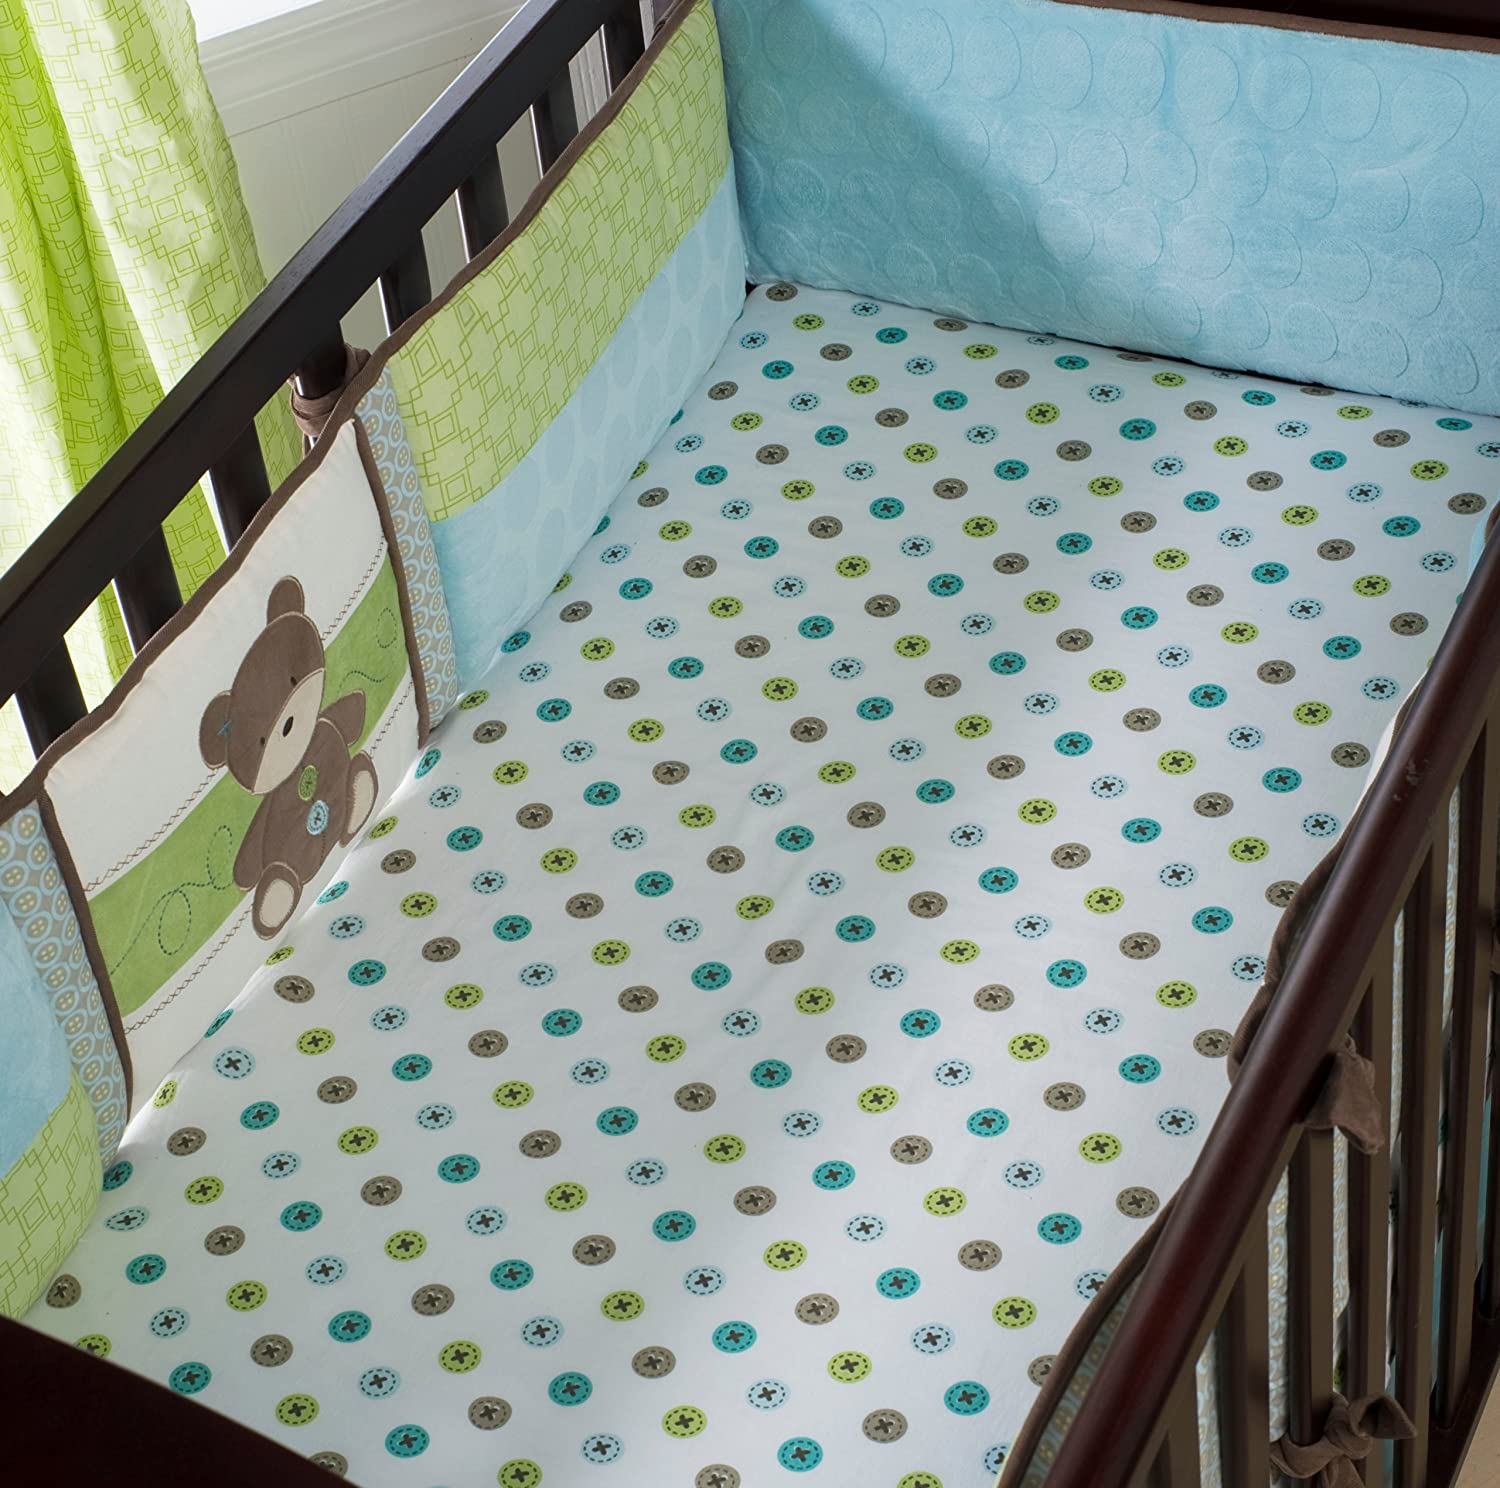 Kidsline Toyland Bedding And Nursery Decor Baby Bedding